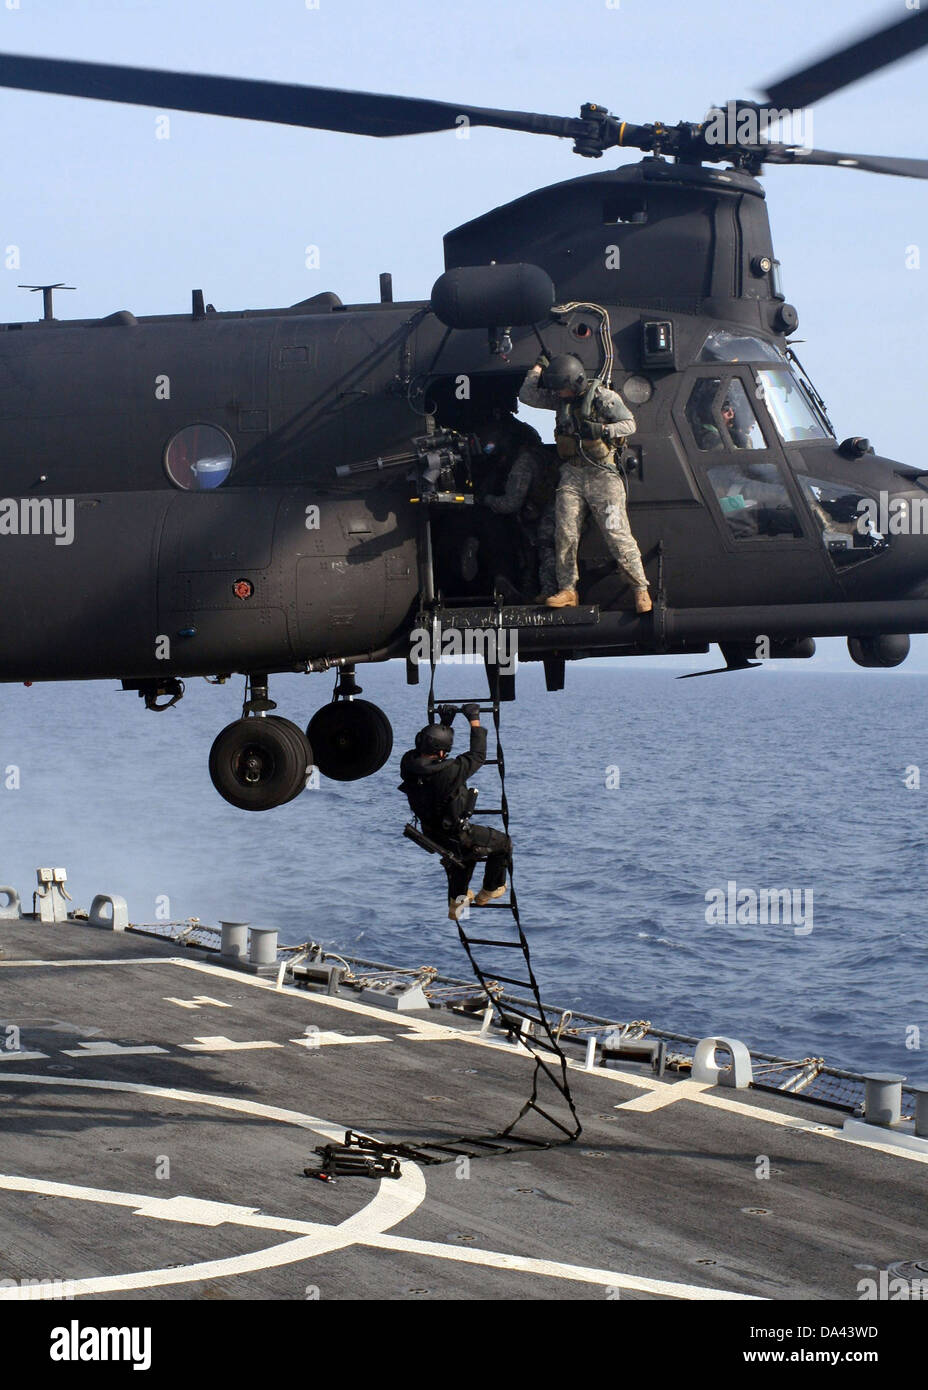 Stock Photo US Air Force Special operations forces fast rope from an MH 47 Chinook helicopter onto the guided missile destroyer USS Higgins during